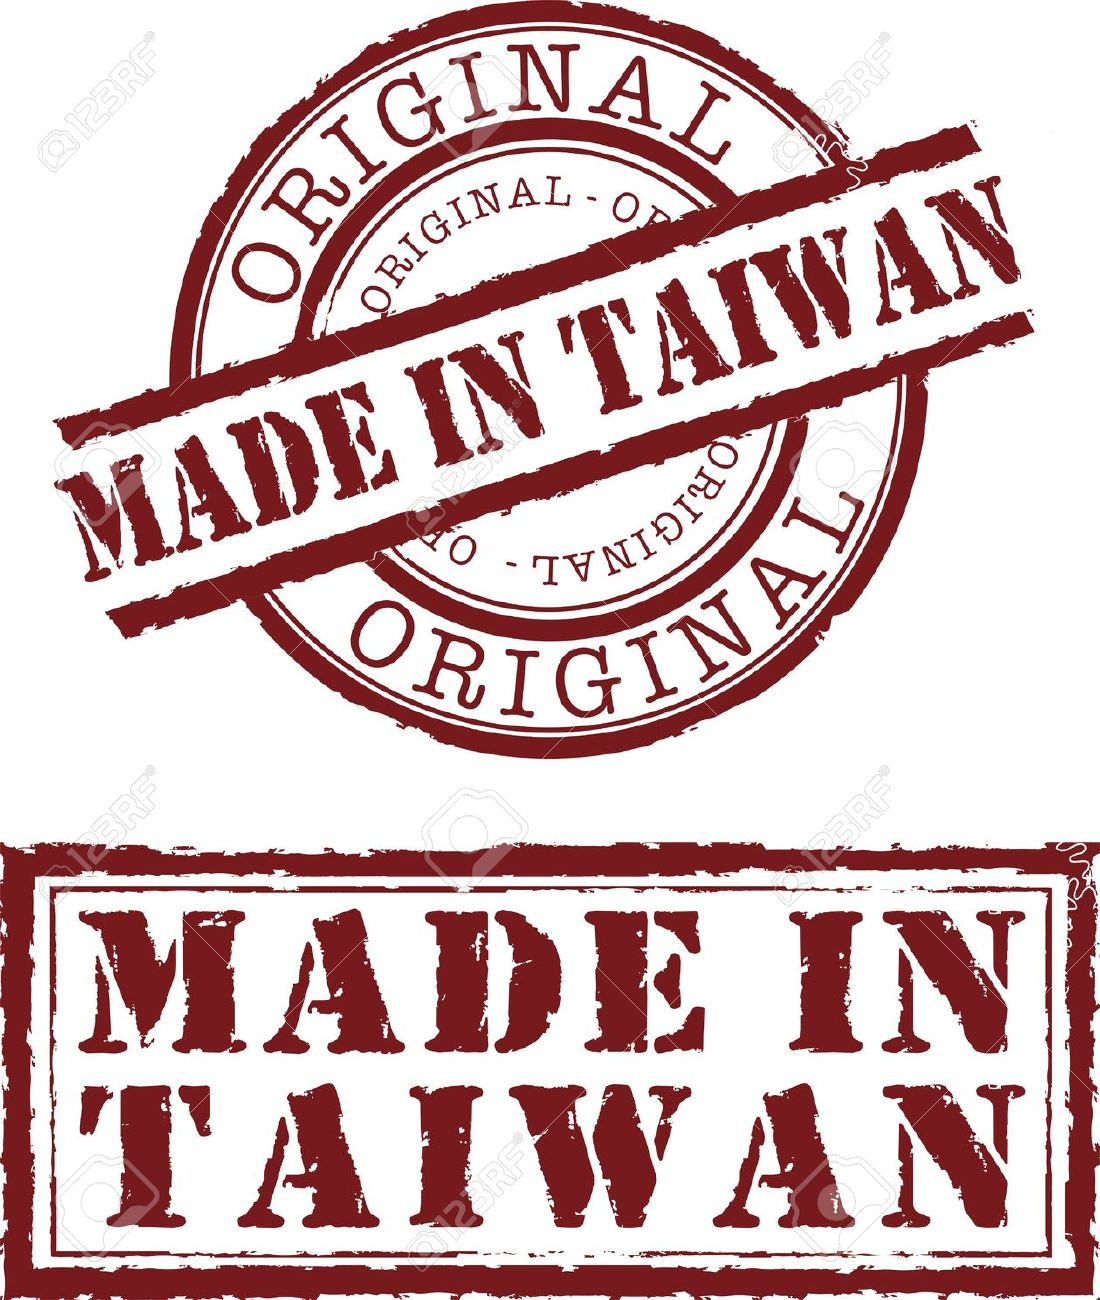 http://s7.picofile.com/file/8251899692/6268107_made_in_taiwan_stamp_with_red_ink_Stock_Vector.jpg